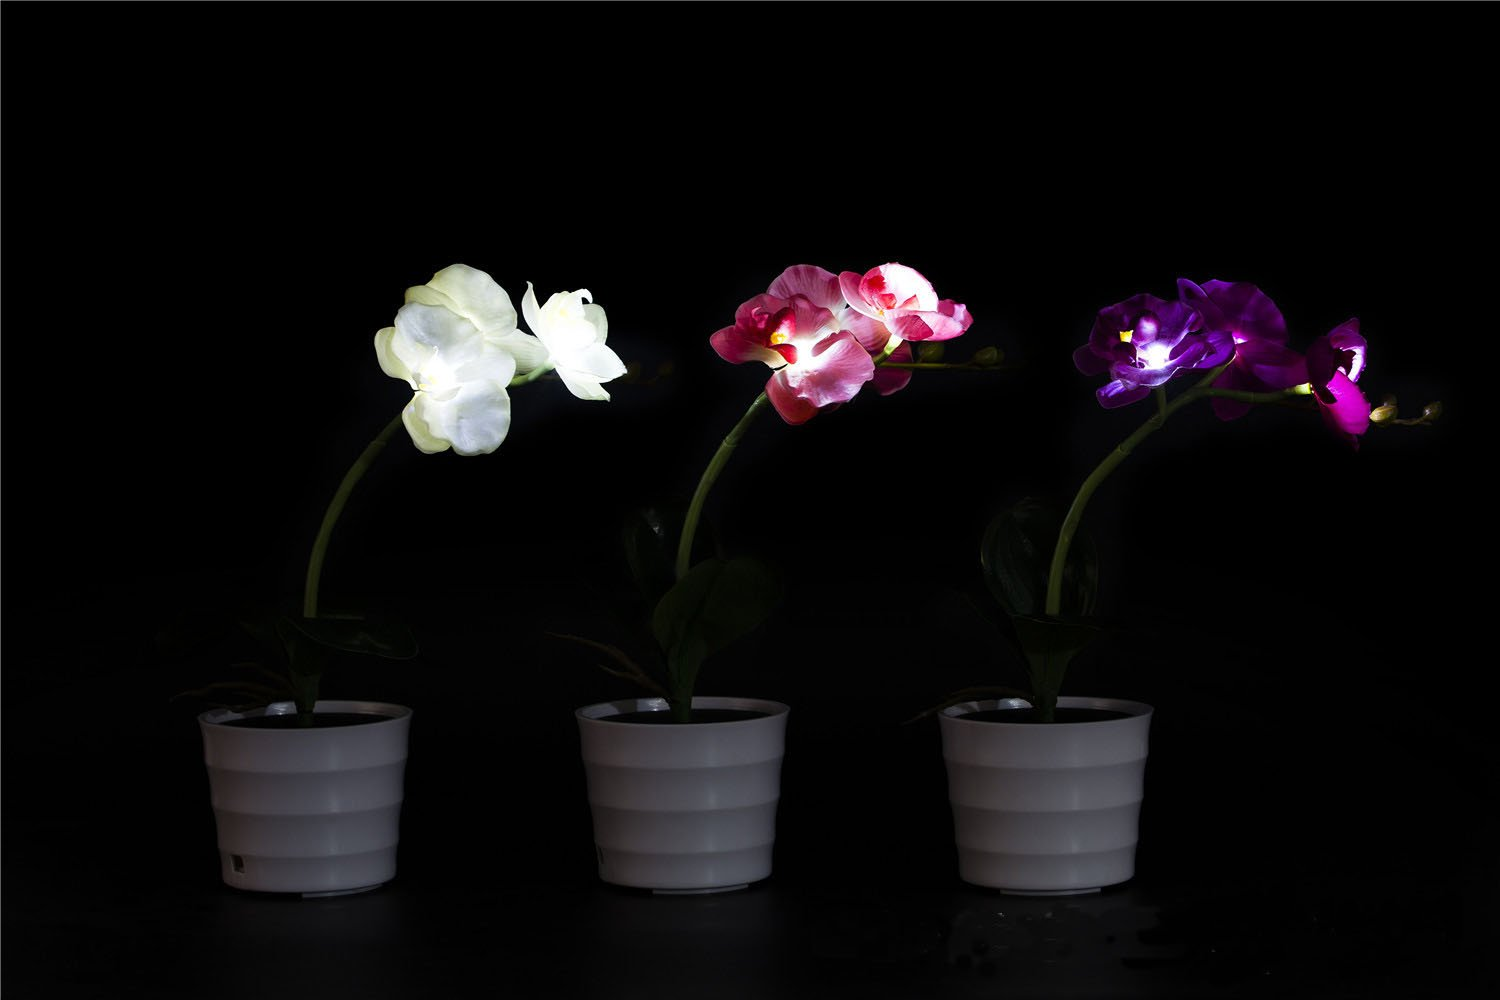 FANStek LED Lighted Artificial Orchid Flower Solar Orchid Pot with 3 Lights(White) (White)